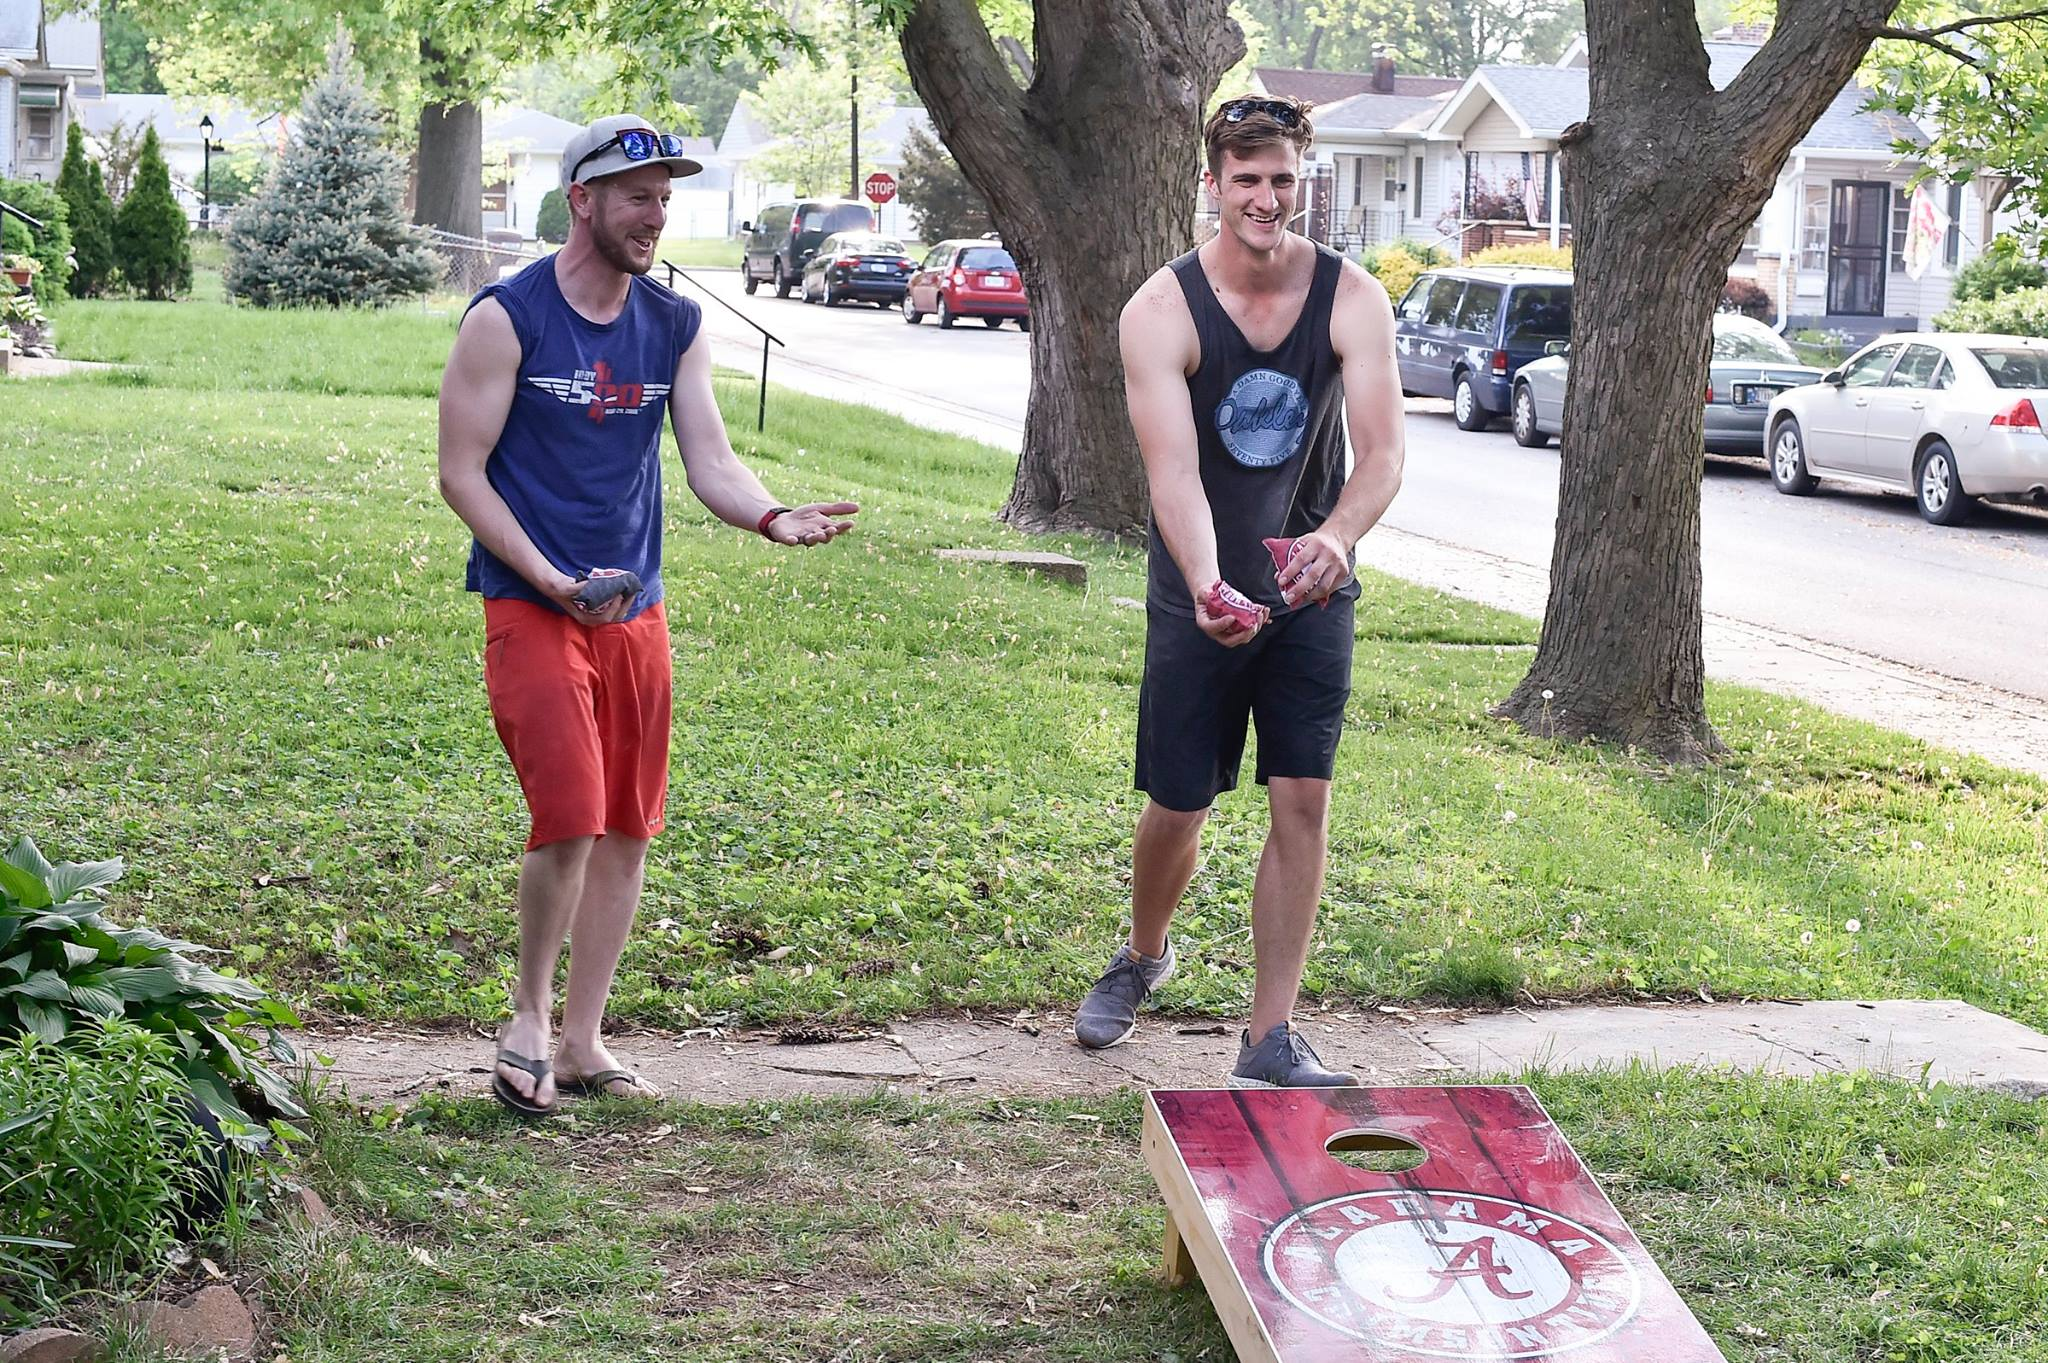 Kimball & Cross, Corn hole Competitors - Shot with Nikon D4S, Speedway, IN